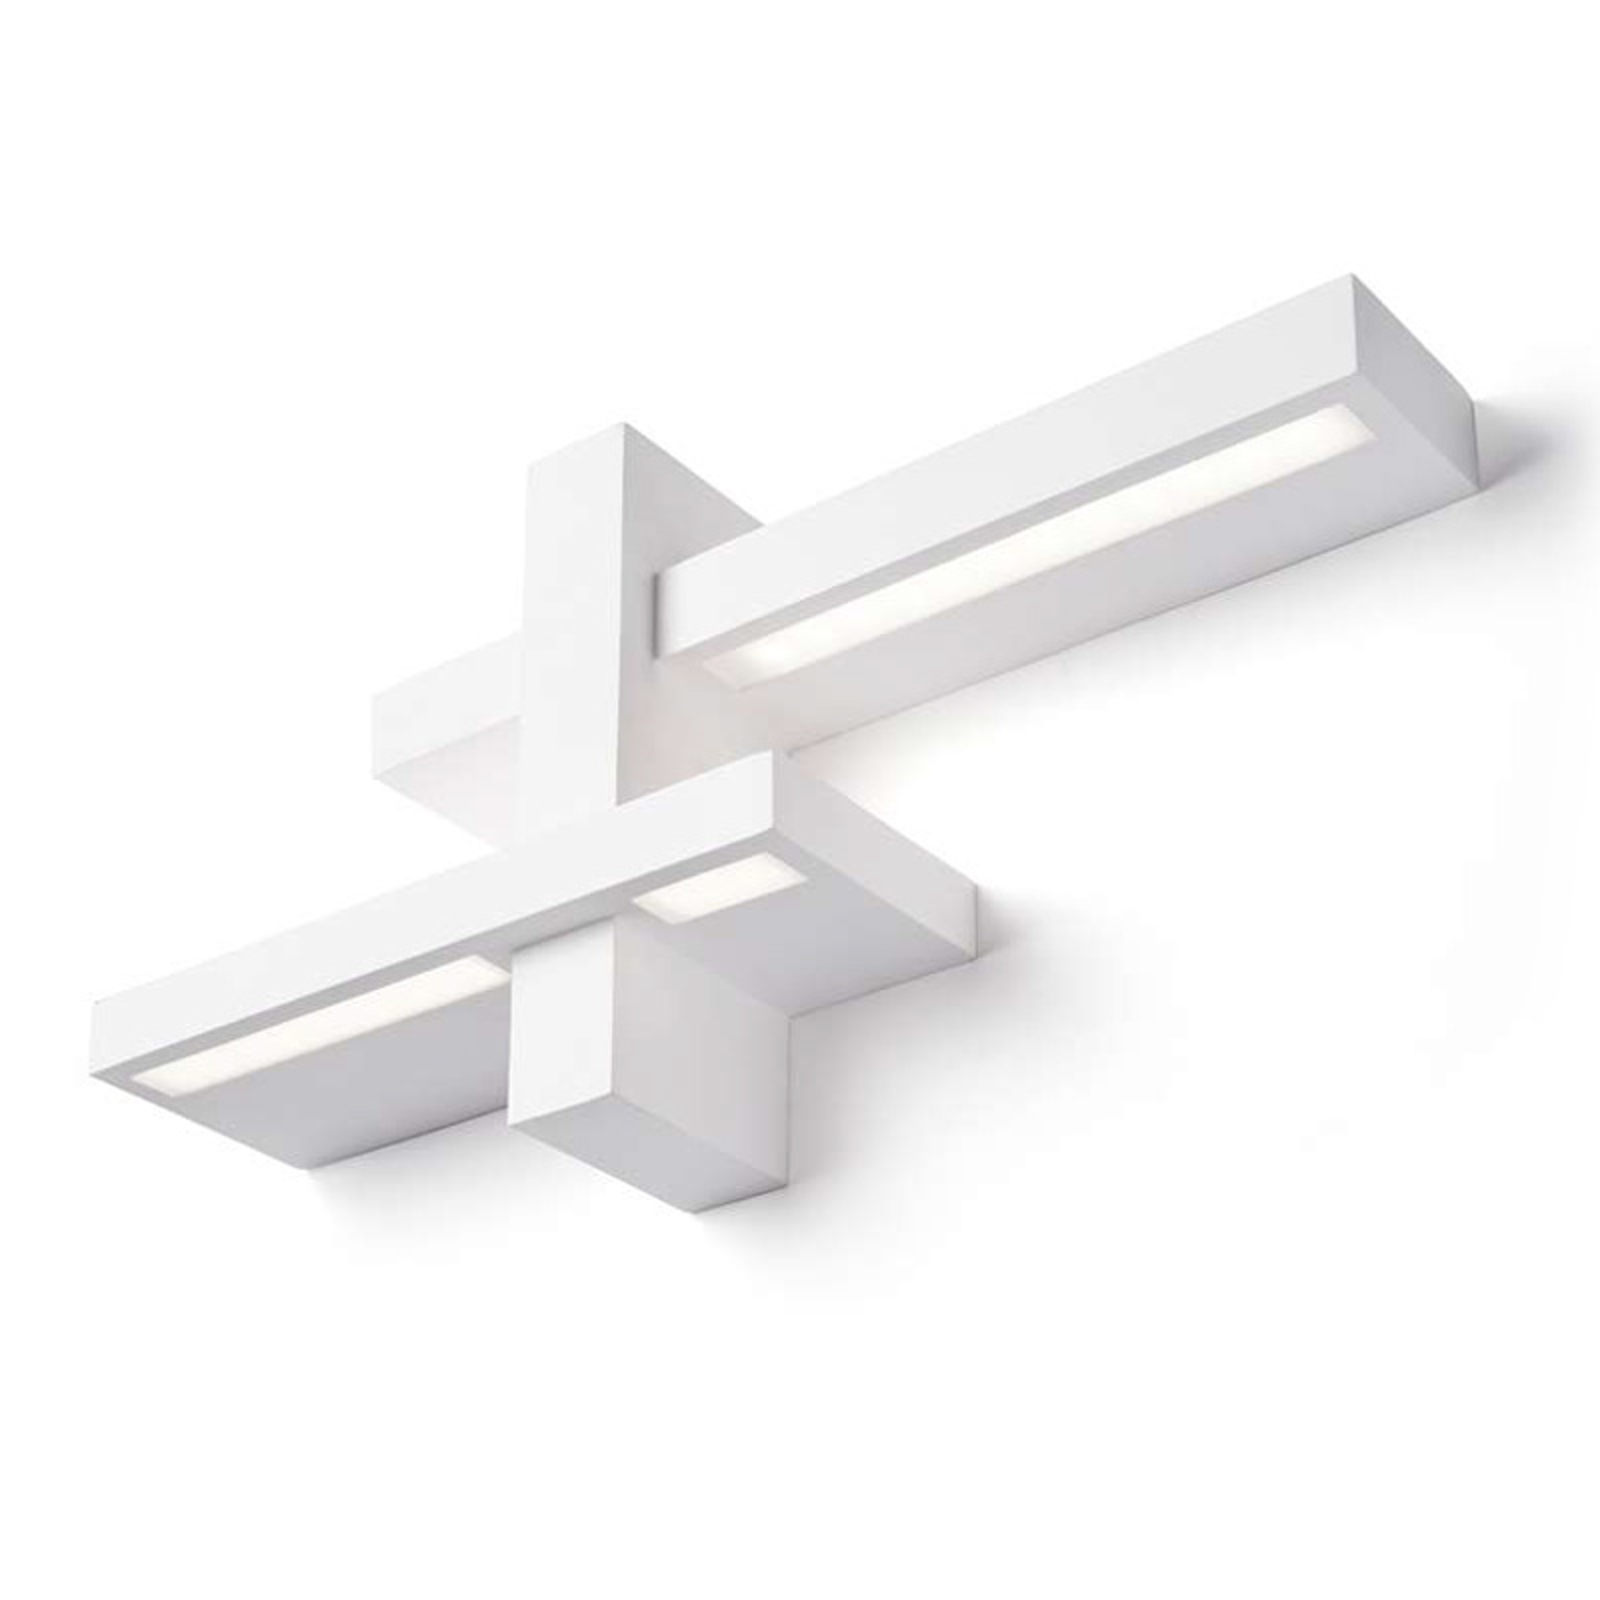 Applique LED Magnesia T285 45 cm x 22 cm